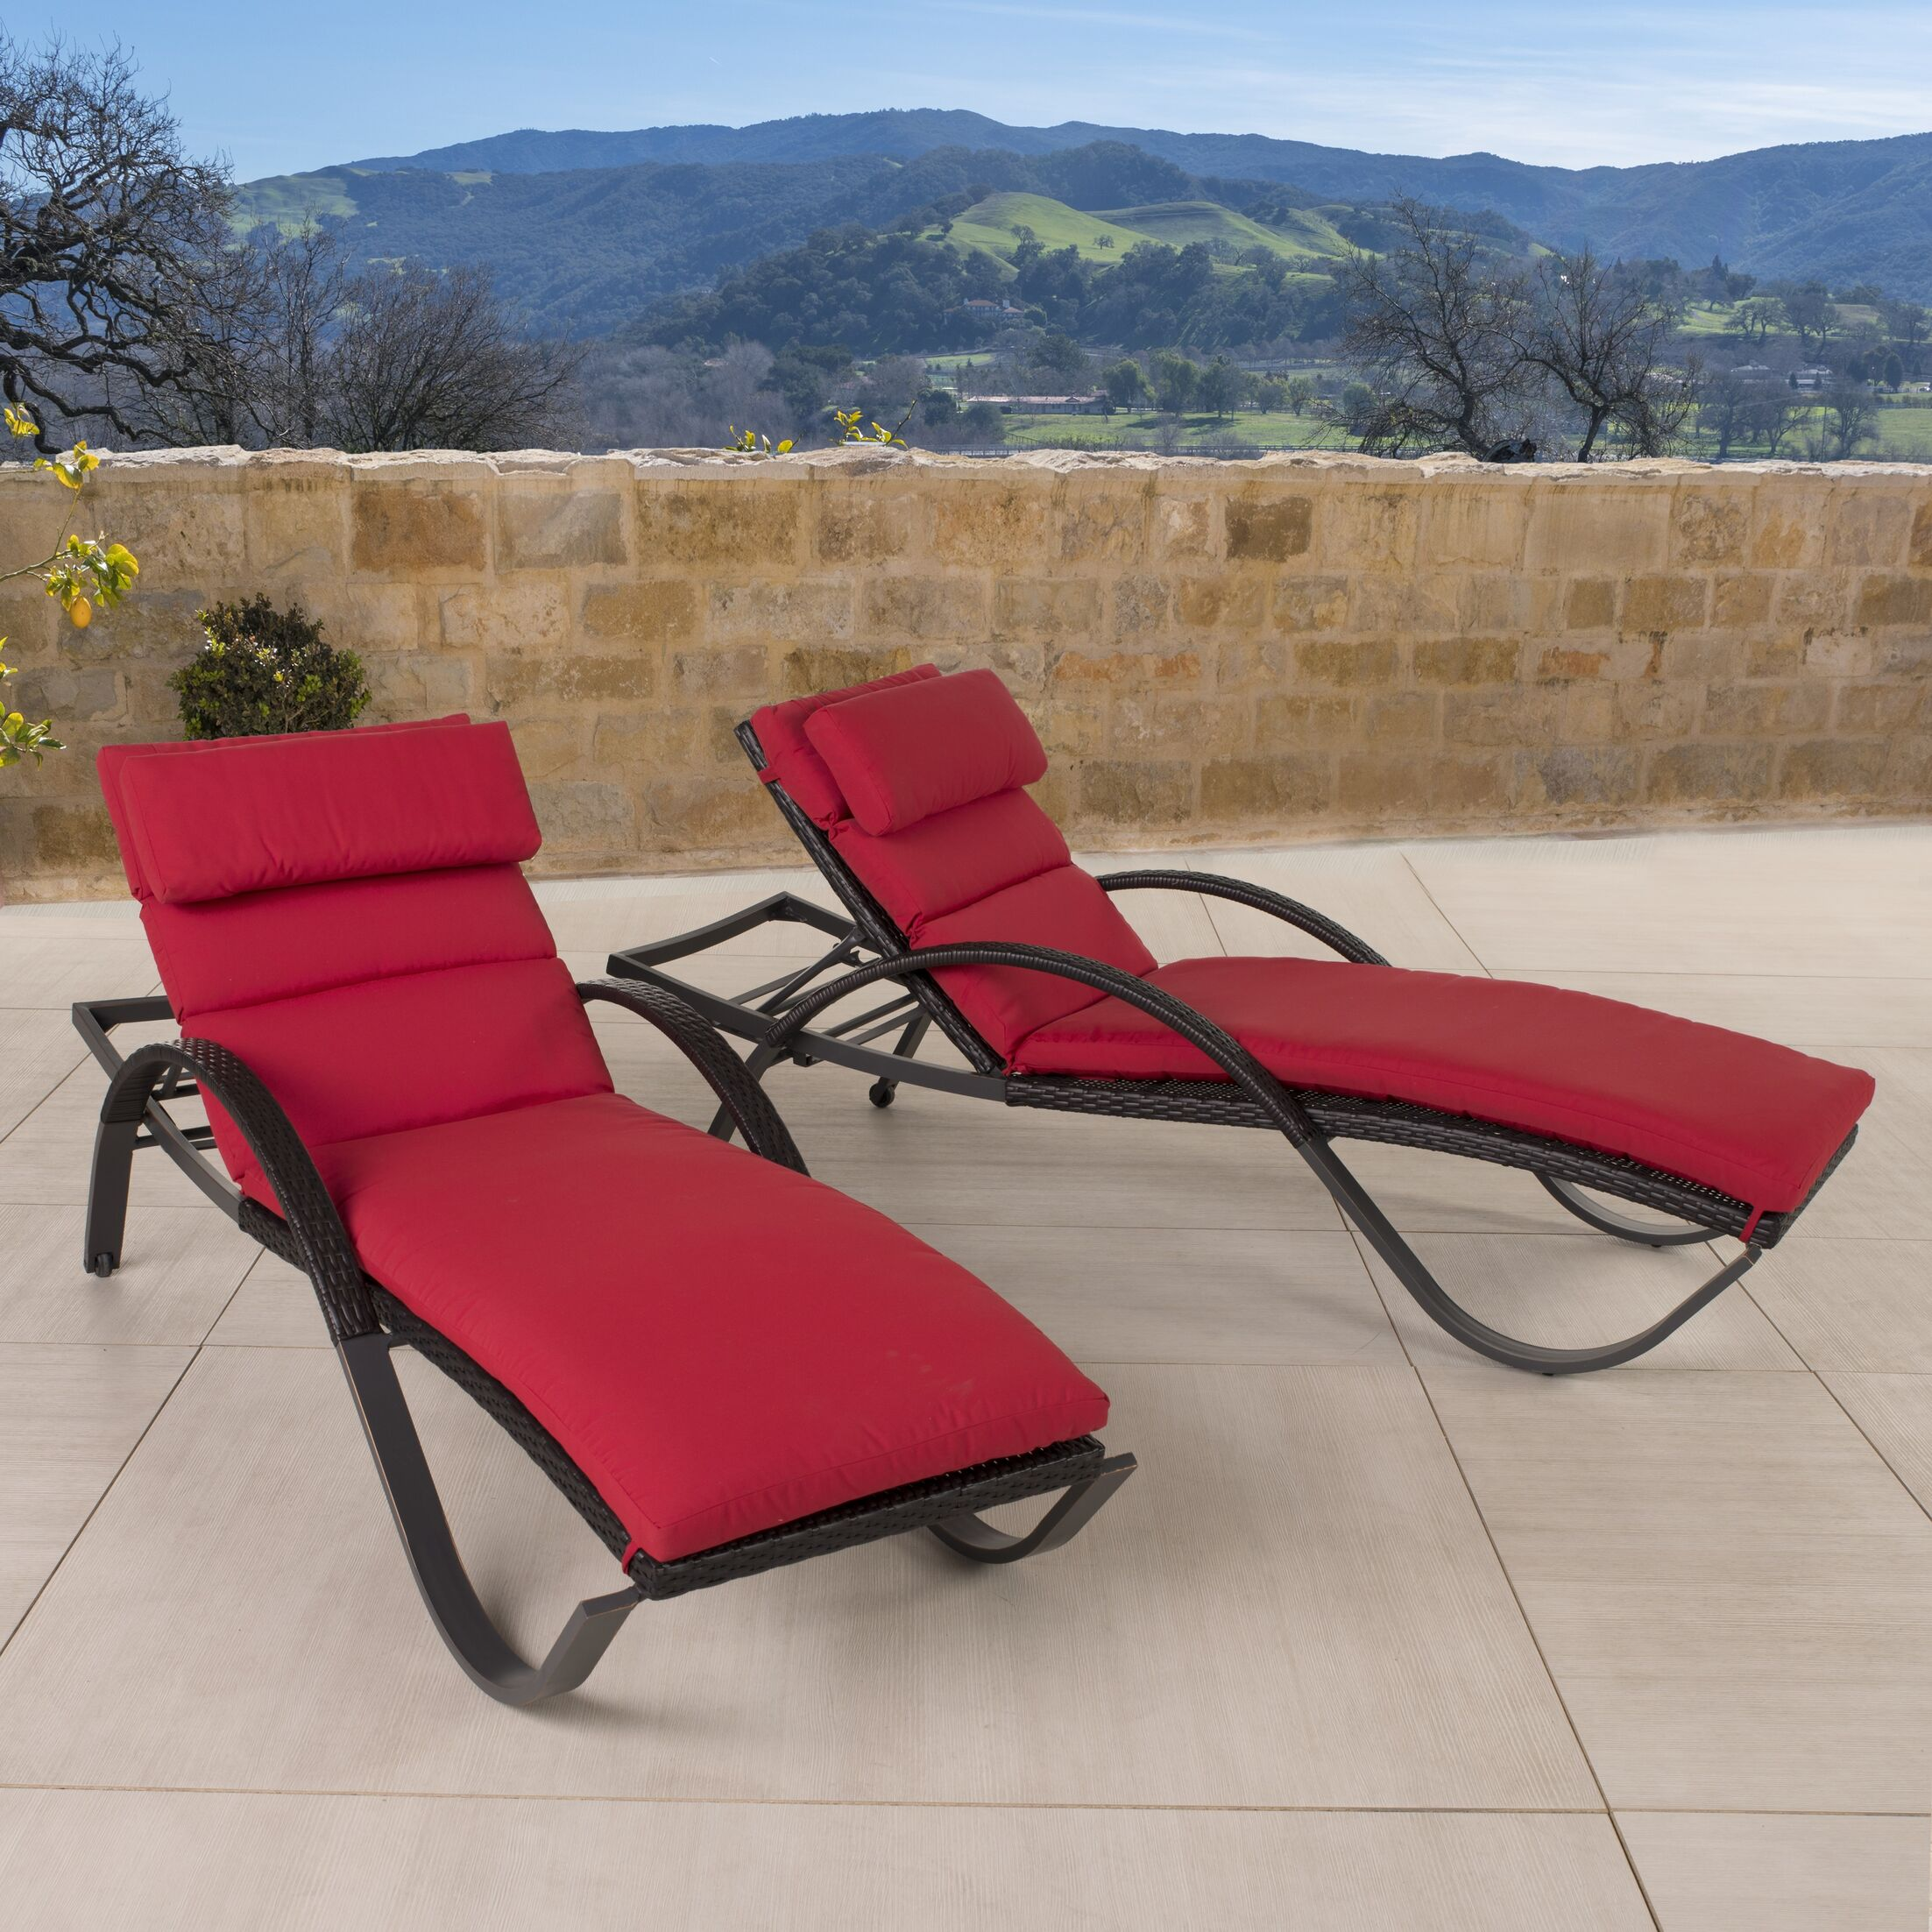 Northridge Chaise Lounge with Cushion Color: Red